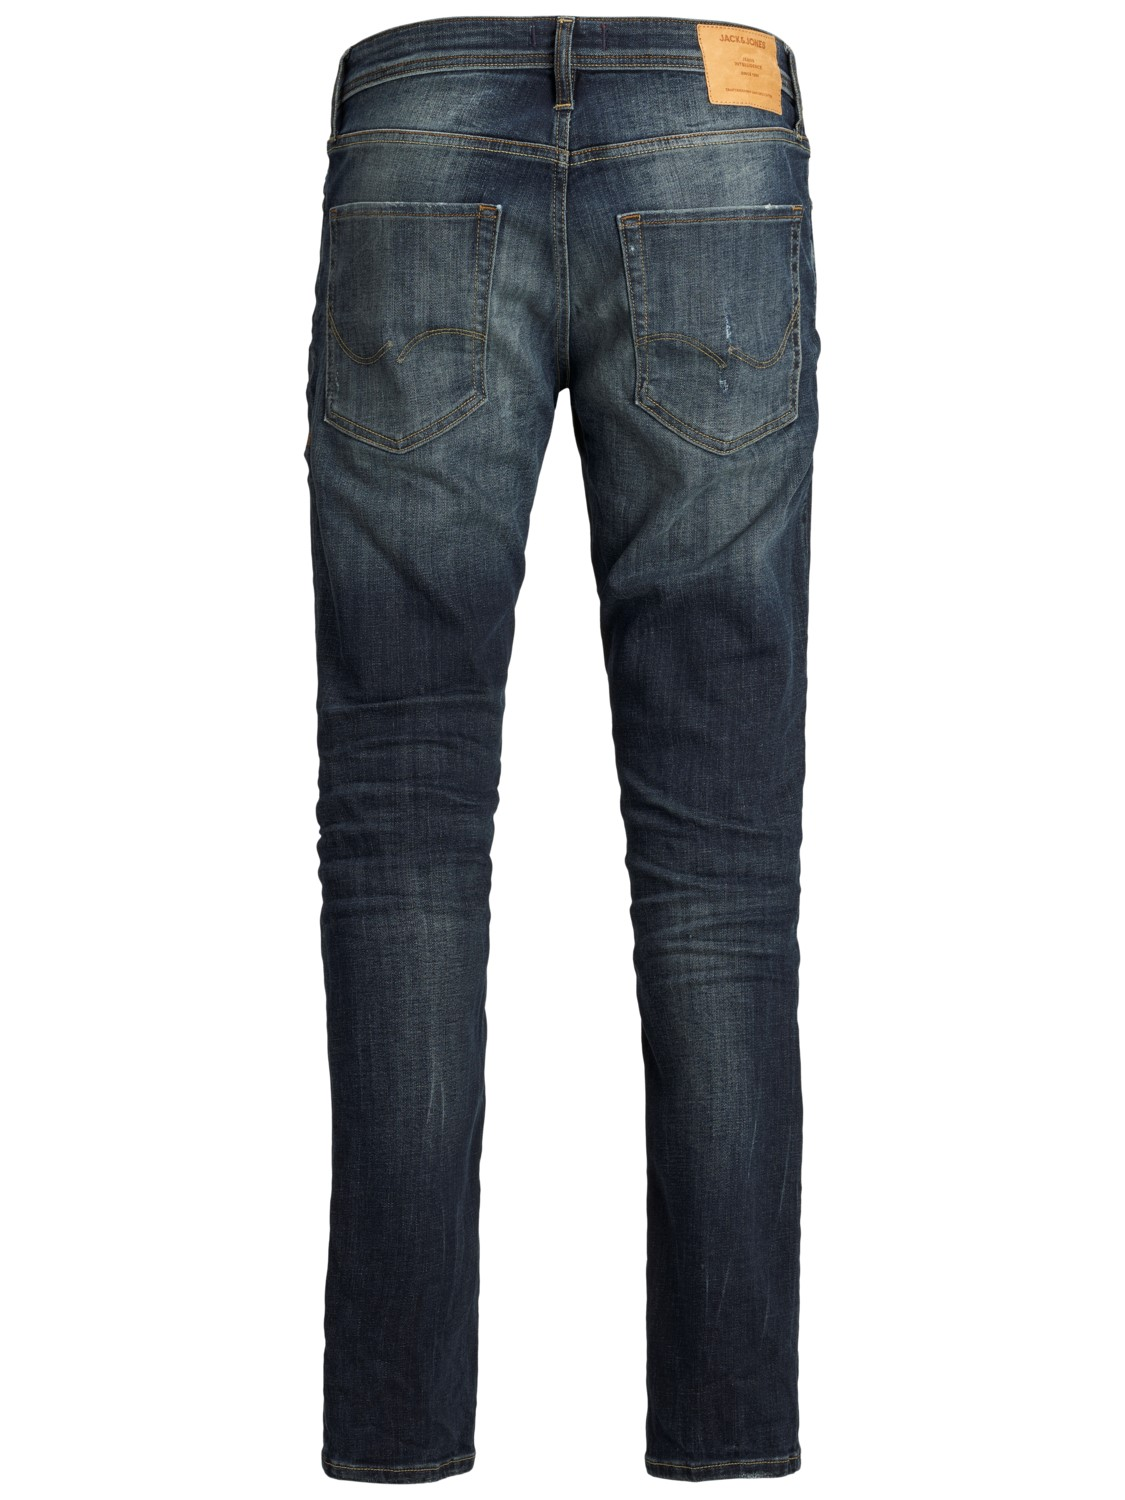 jack-jones-herren-jeans-jjitim-jjoriginal-am-890-50sps-slim-fit-blau-blue-denim, 54.99 EUR @ jeans